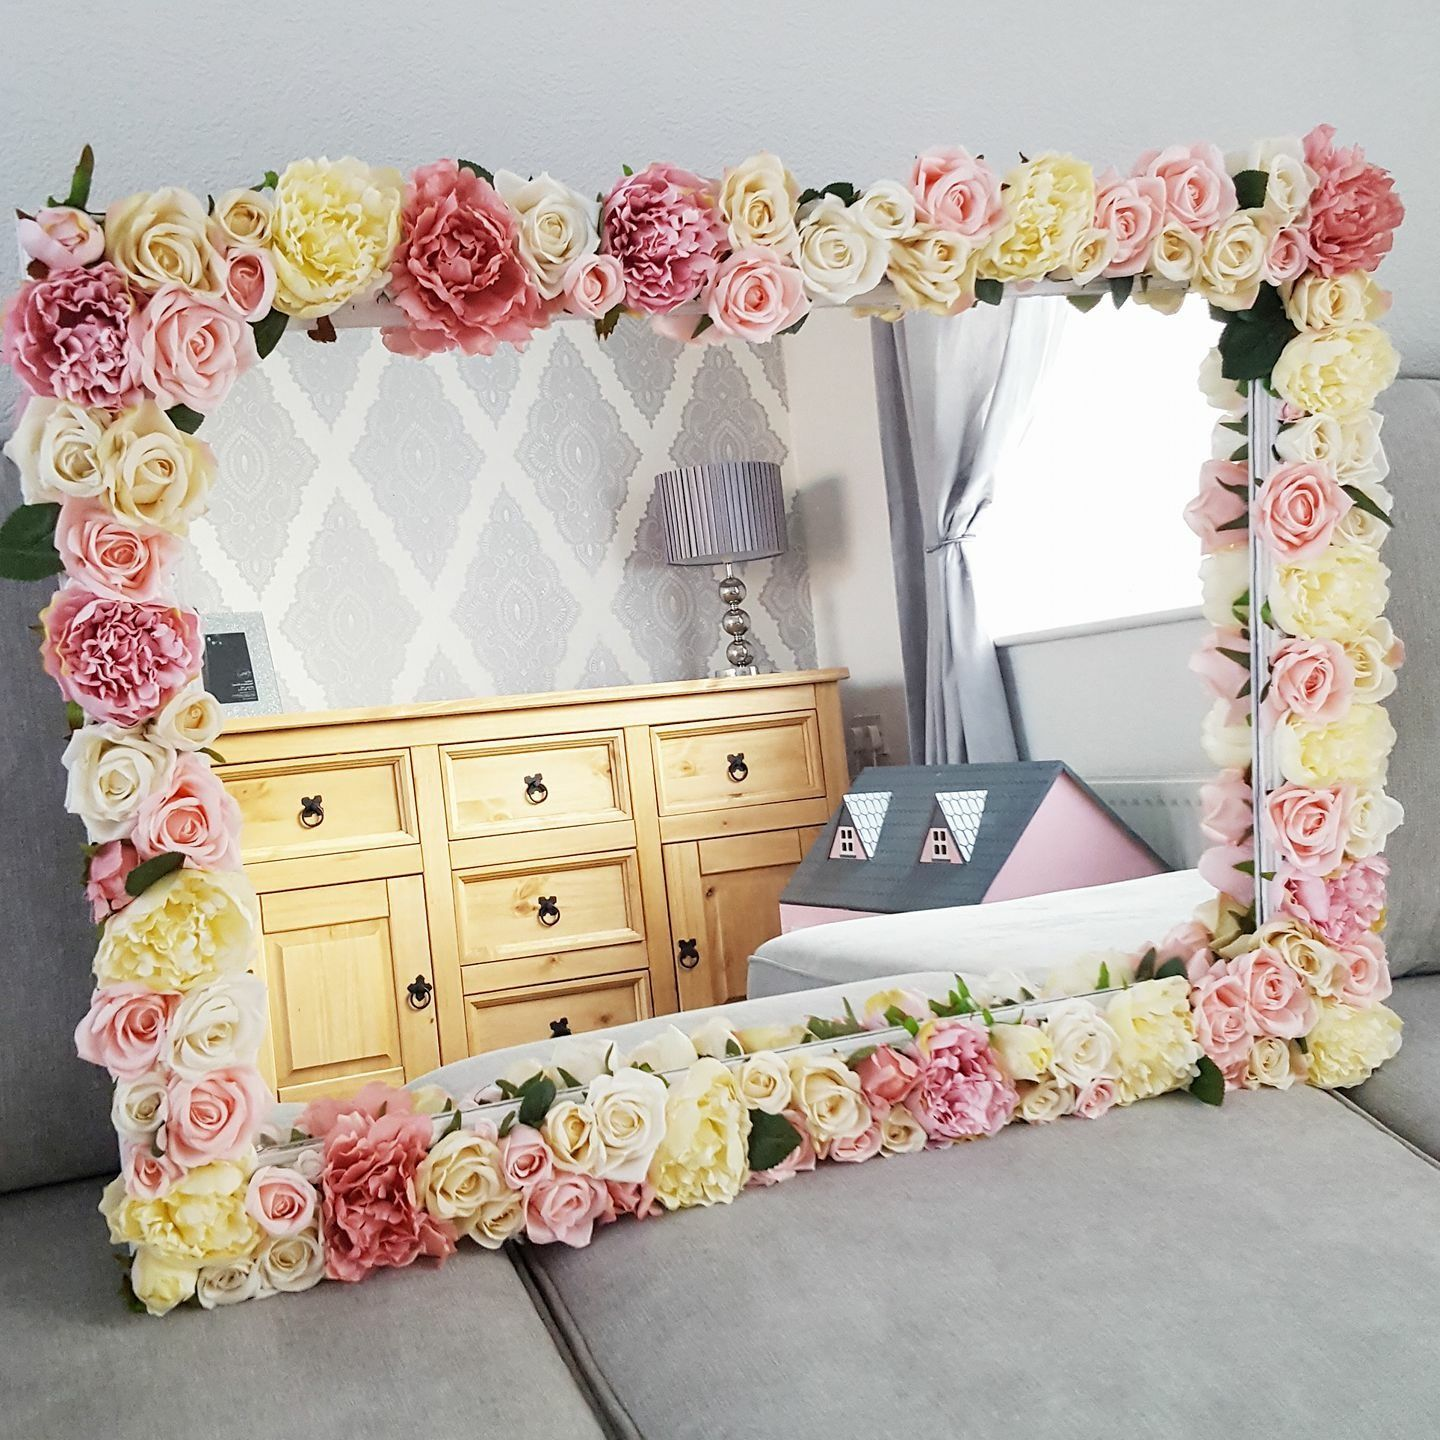 Diy Flower Mirror Glue The Artificial Flowers On Craft